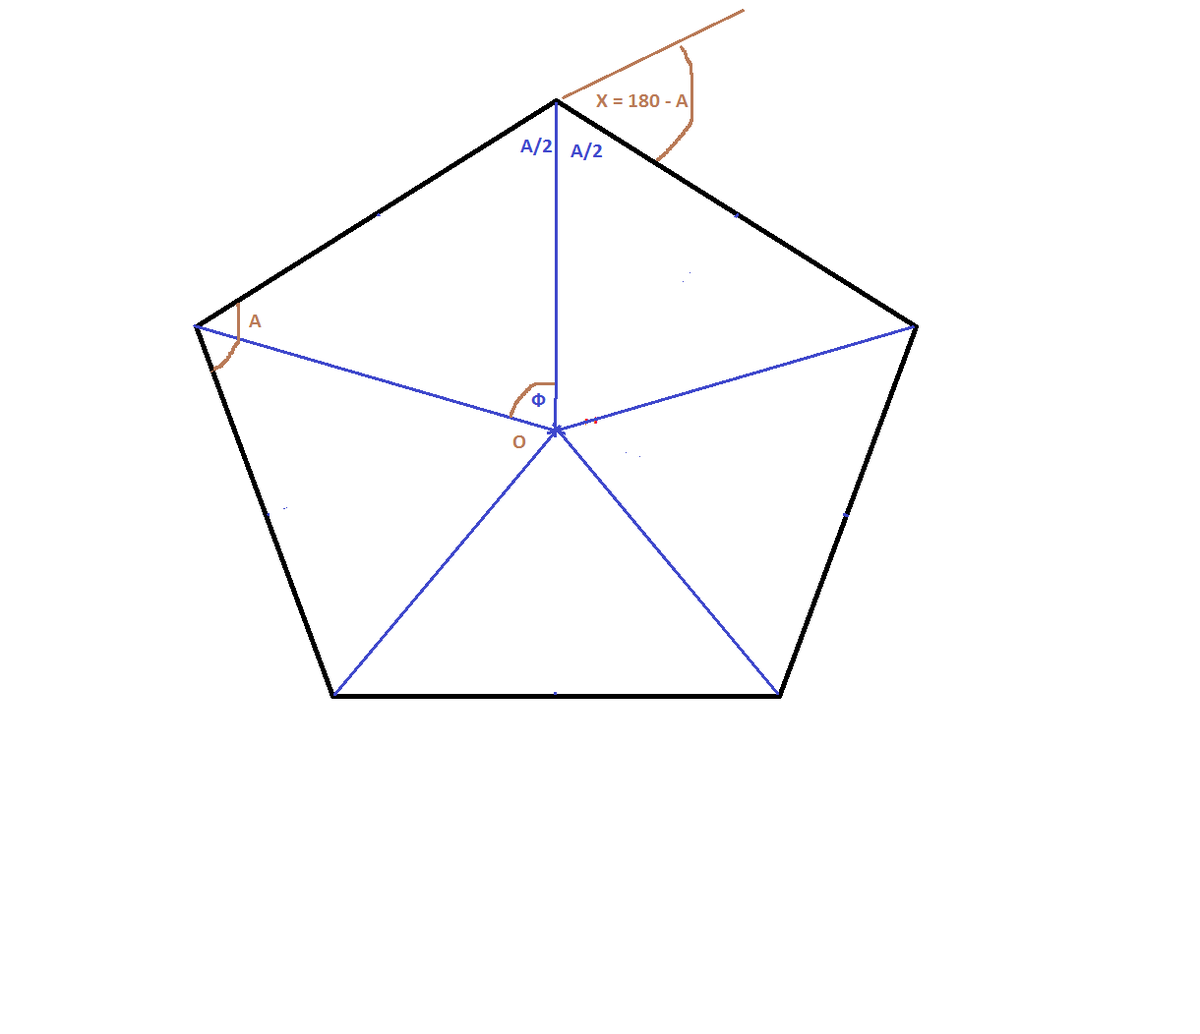 If The Exterior Angle Of A Regular Polygon Is 45 Degrees Then What Is The No Of Sides In The